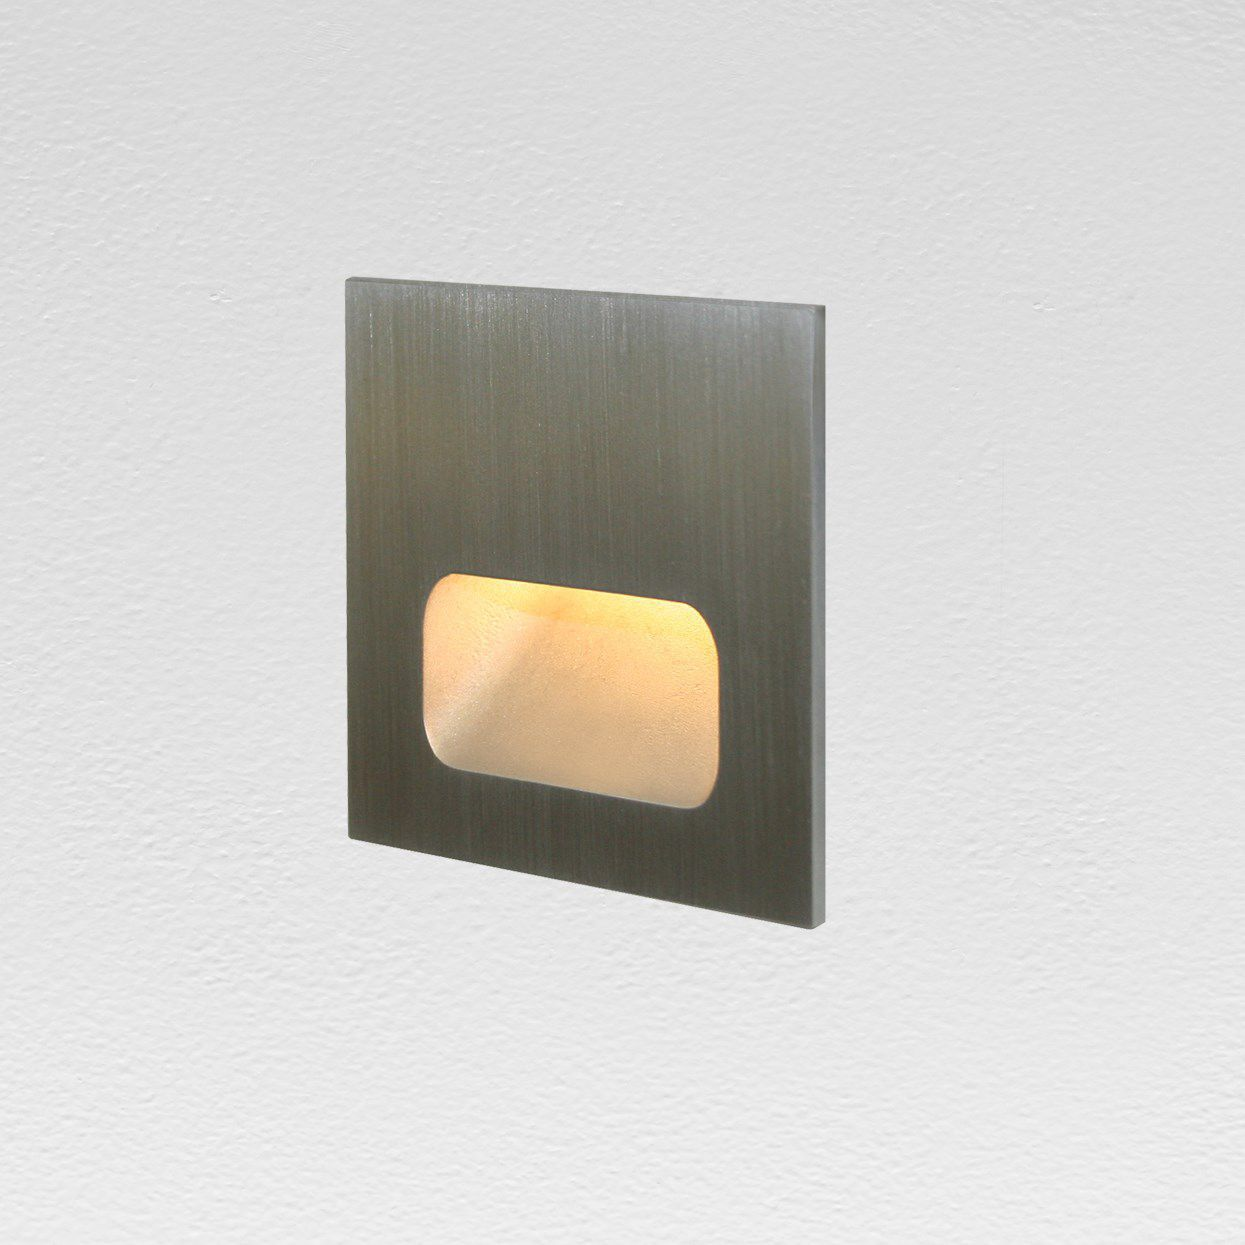 Recessed Wall Light Fixture / LED / Square / Outdoor   SSL1 LED